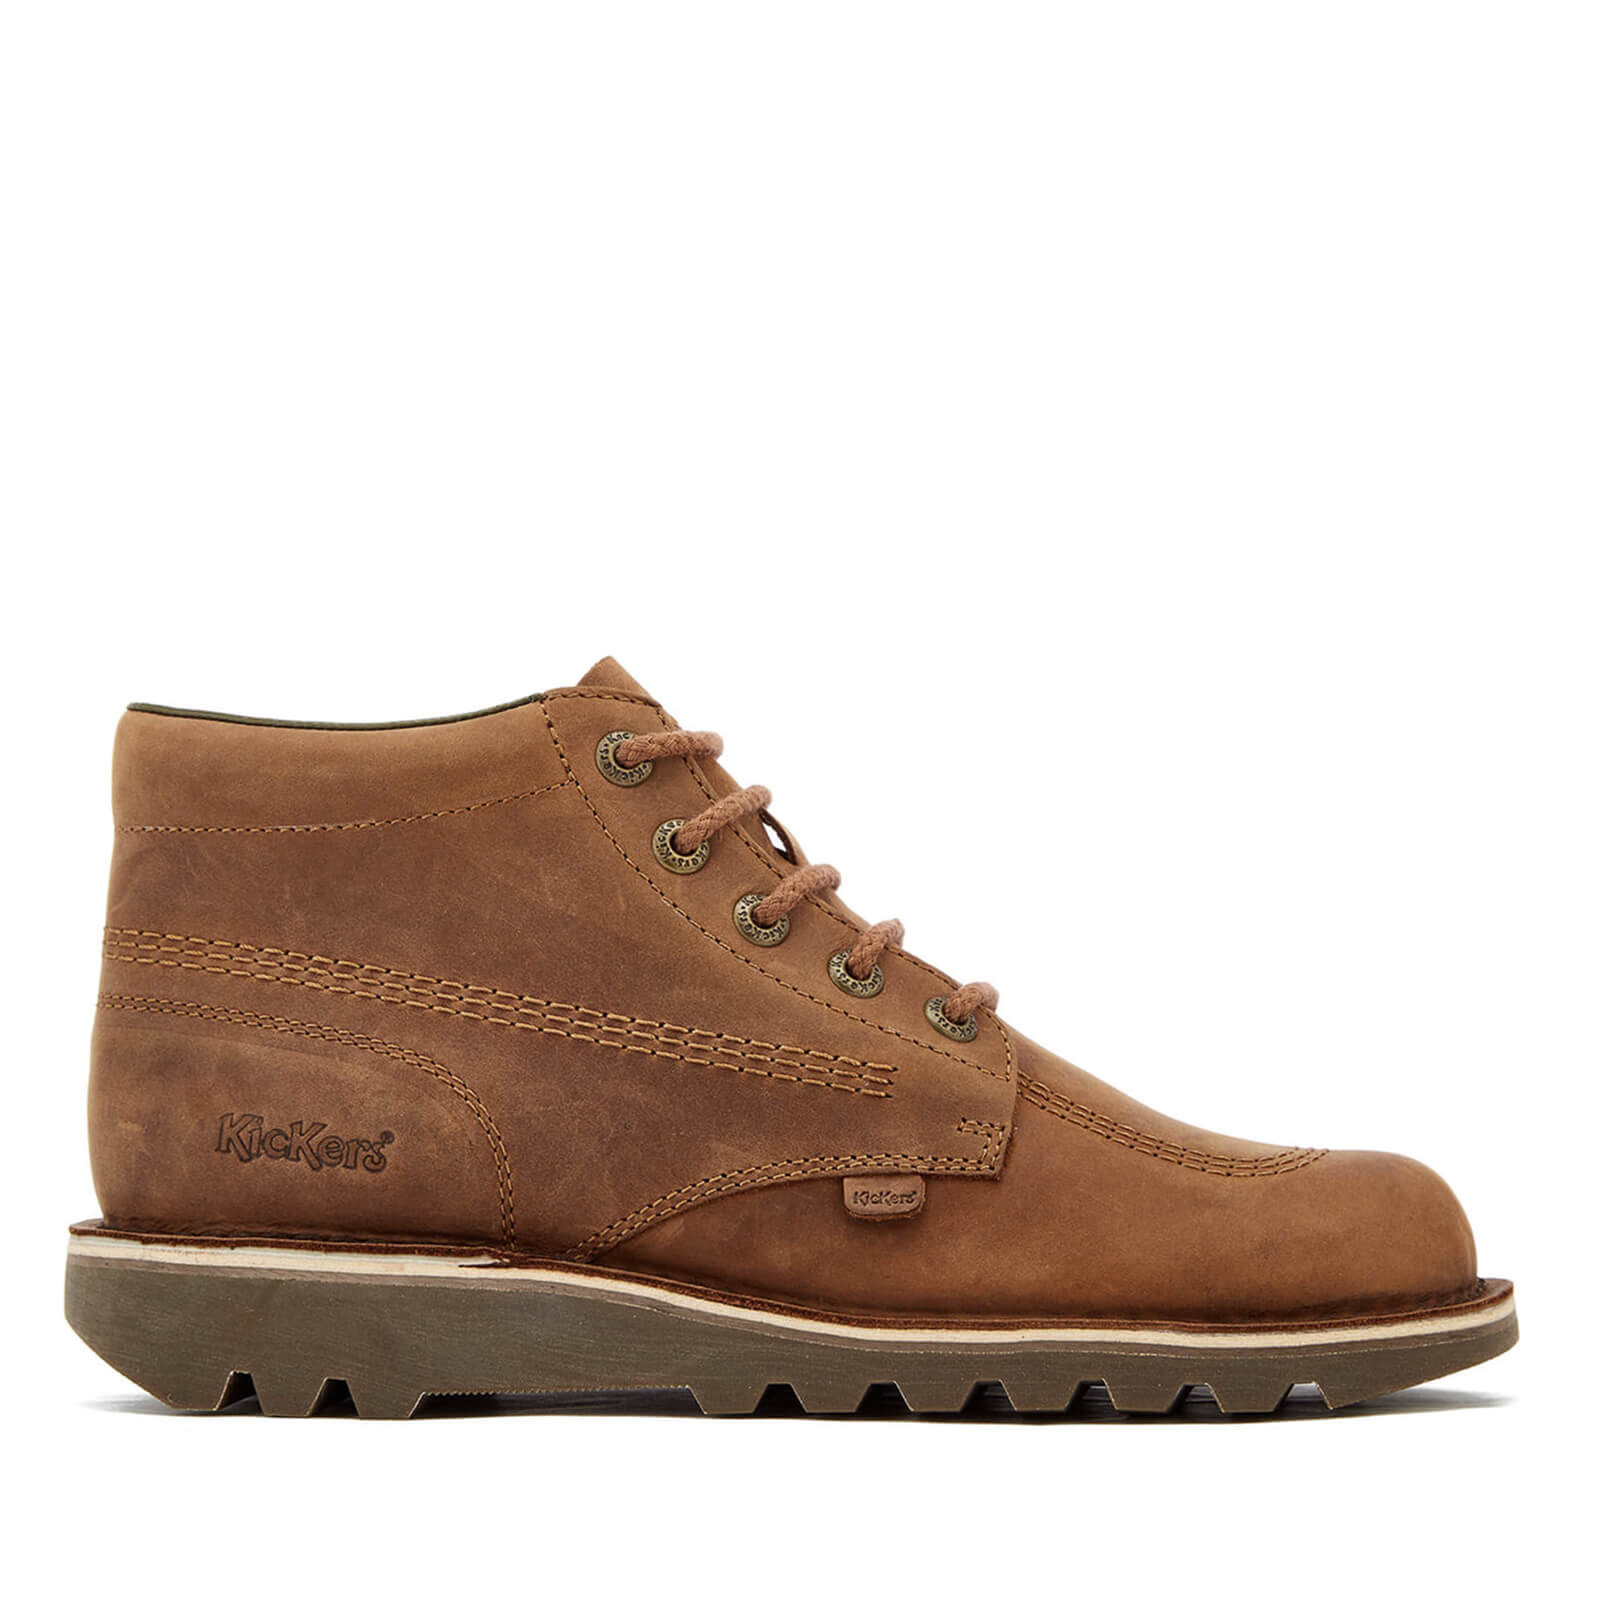 Bottines en Cuir Homme Kickers Kick Hi - Brun